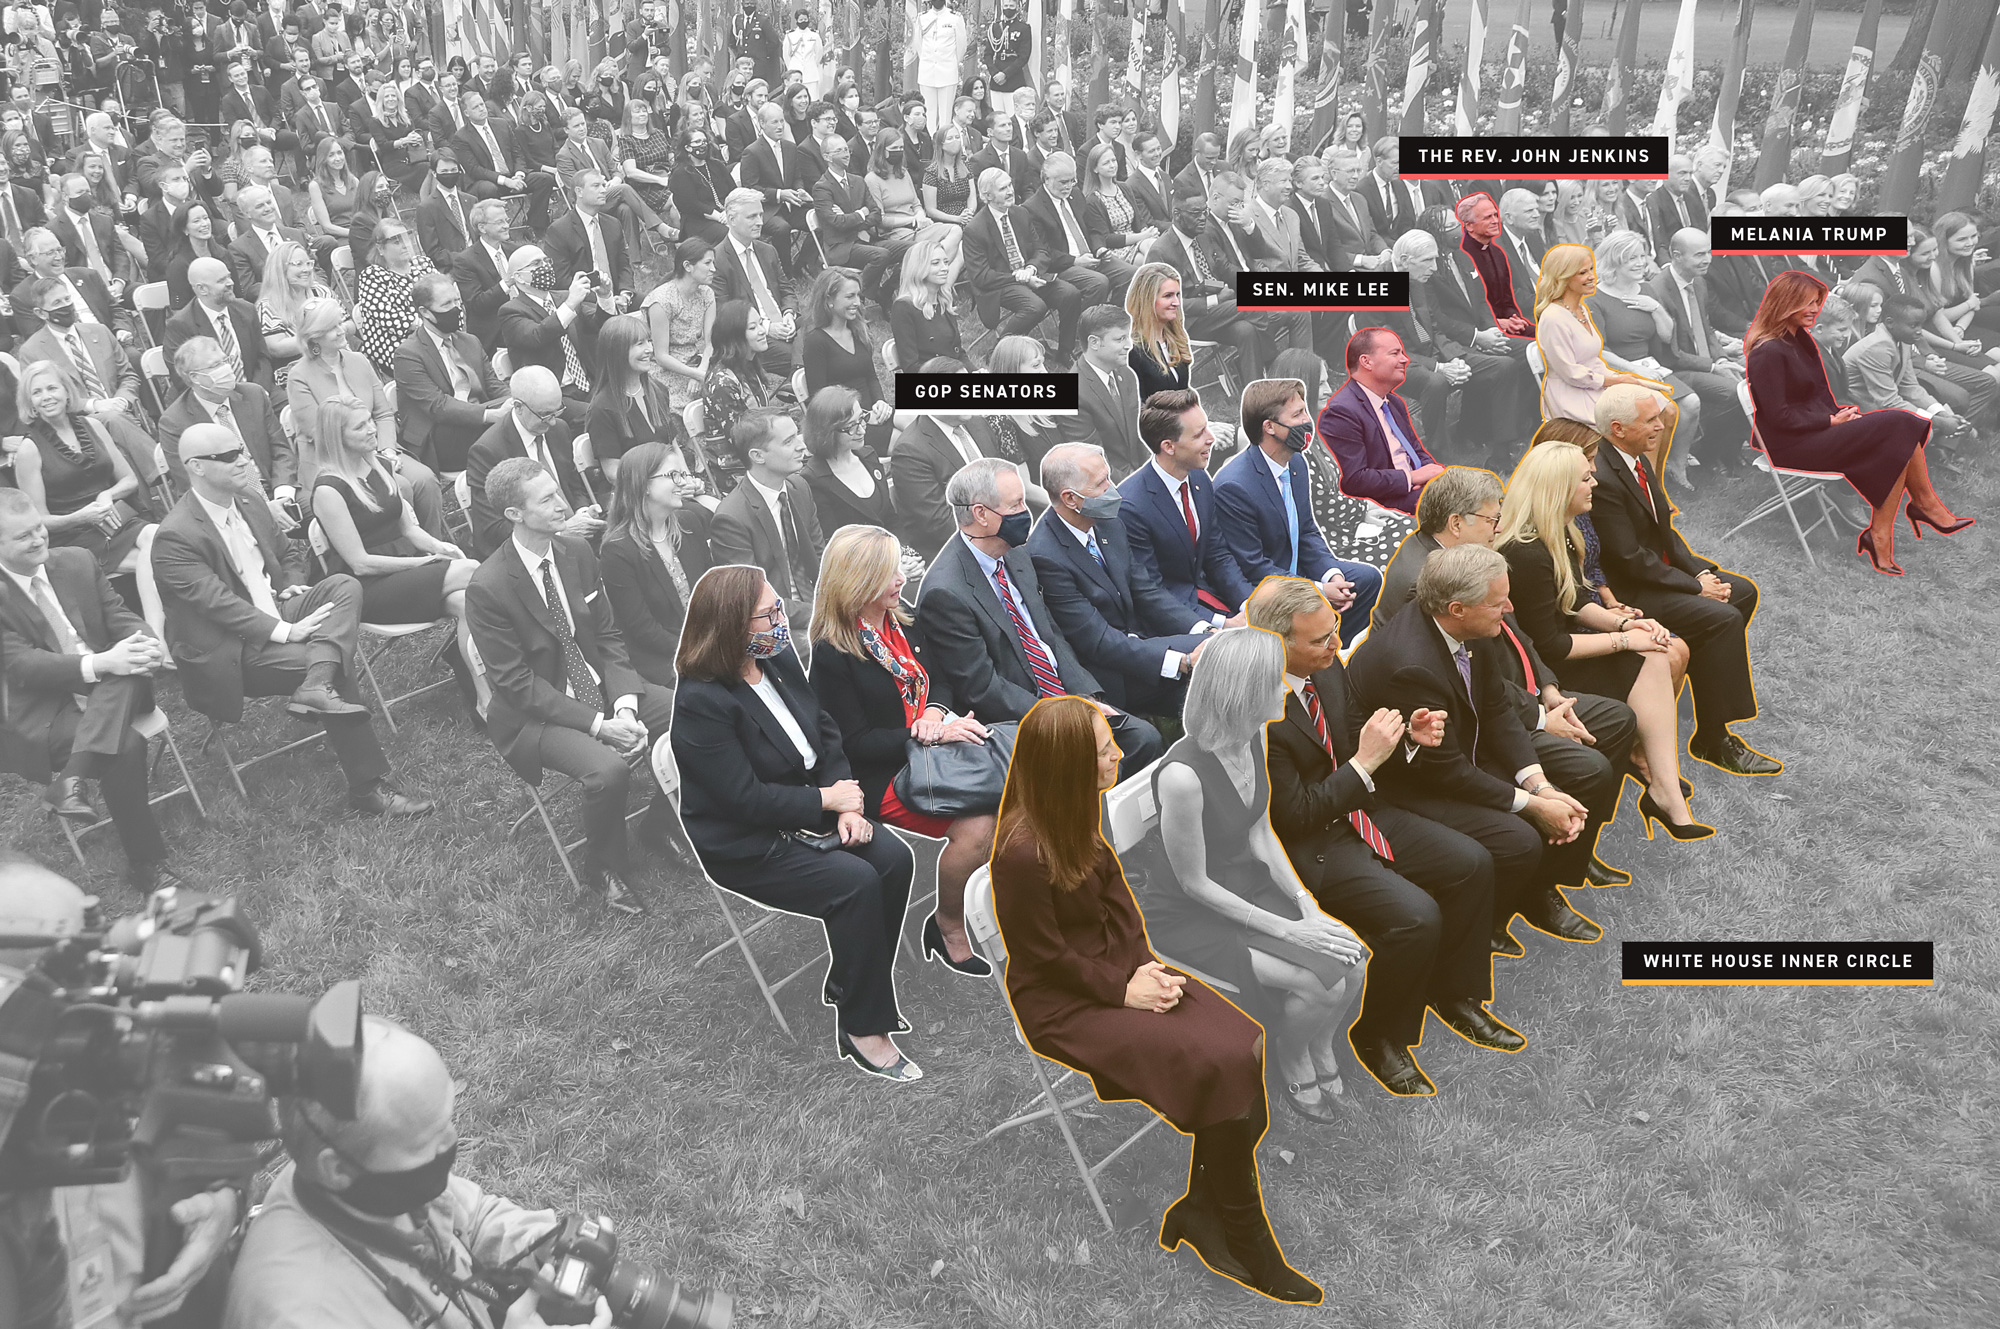 A photo with annotation from 9/26 Amy Coney Barrett announcement, with notes on who has tested positive for COVID-19 and their proximity to lawmakers and others.